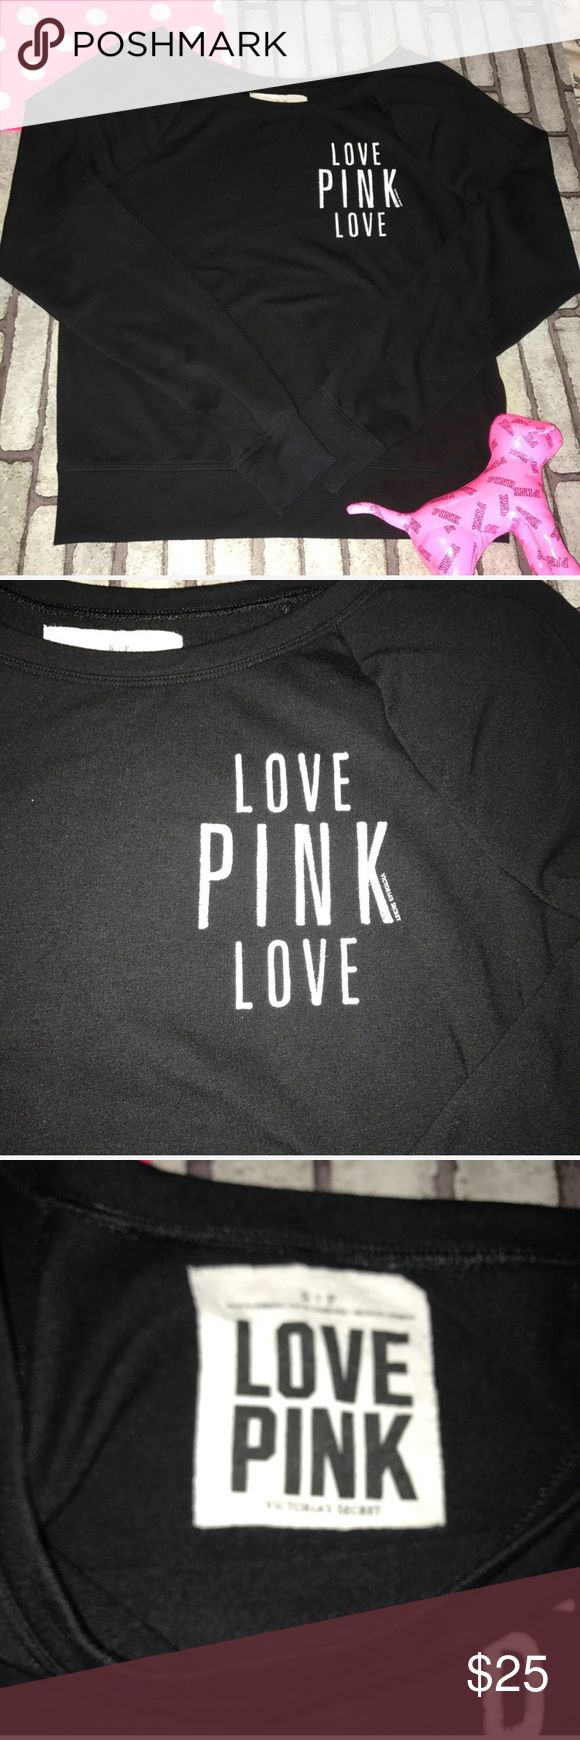 Victoria's Secret Pink slouchy off shoulder crew S So cute & comfy. VS Pink slouchy crew neck shirt. Oversized, relaxed fit. Off the shoulder. Super soft. 62% polyester, 34% viscose, 4% elastane. Machine wash. Size Small. PINK Victoria's Secret Tops Sweatshirts & Hoodies